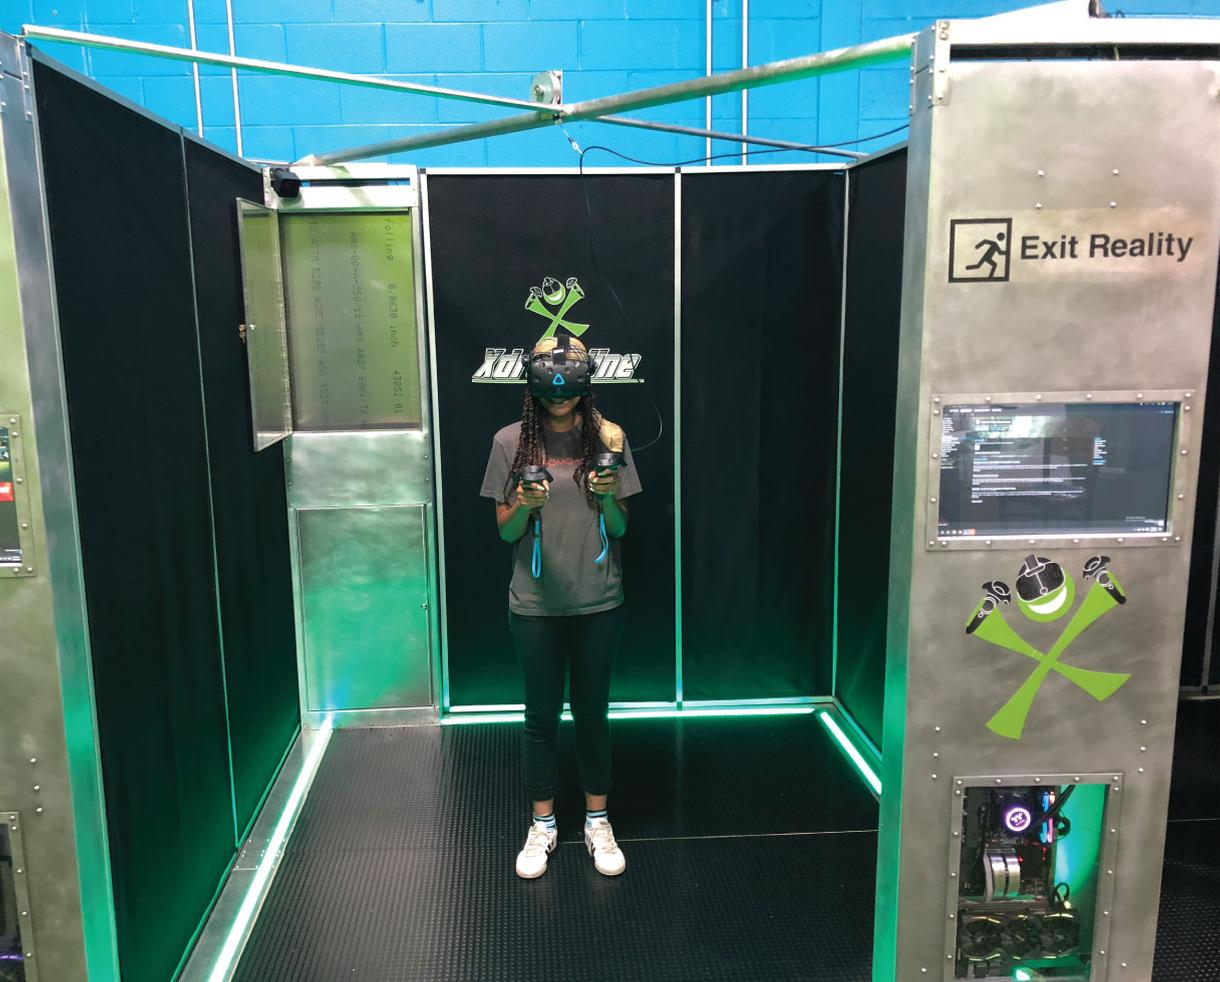 Xdrenaline 10 Minute Virtual Reality Experience, One-Hour All Access Pass + Jump Socks